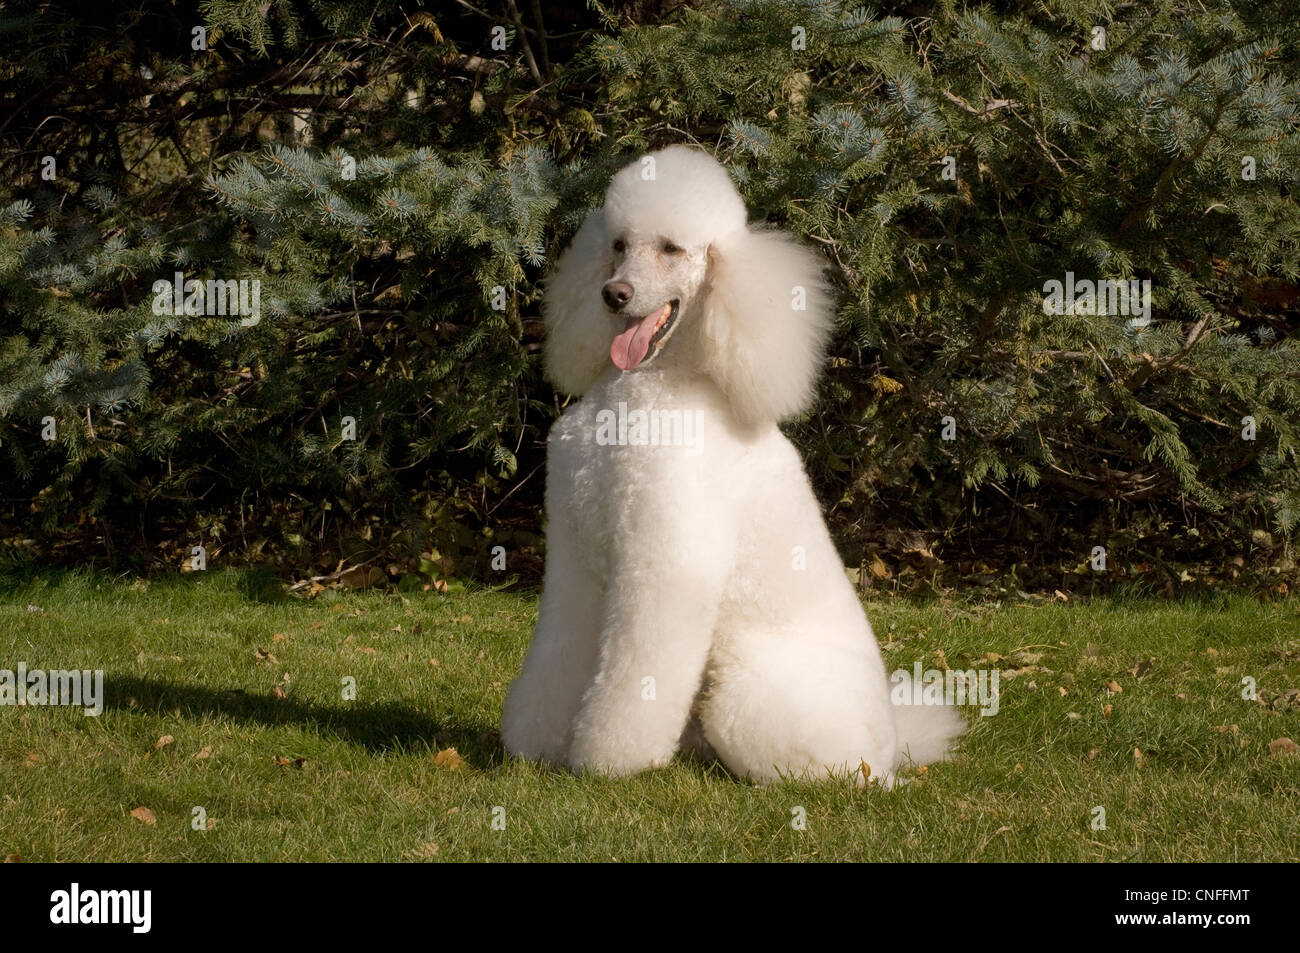 French Poodle sitting in grass - Stock Image